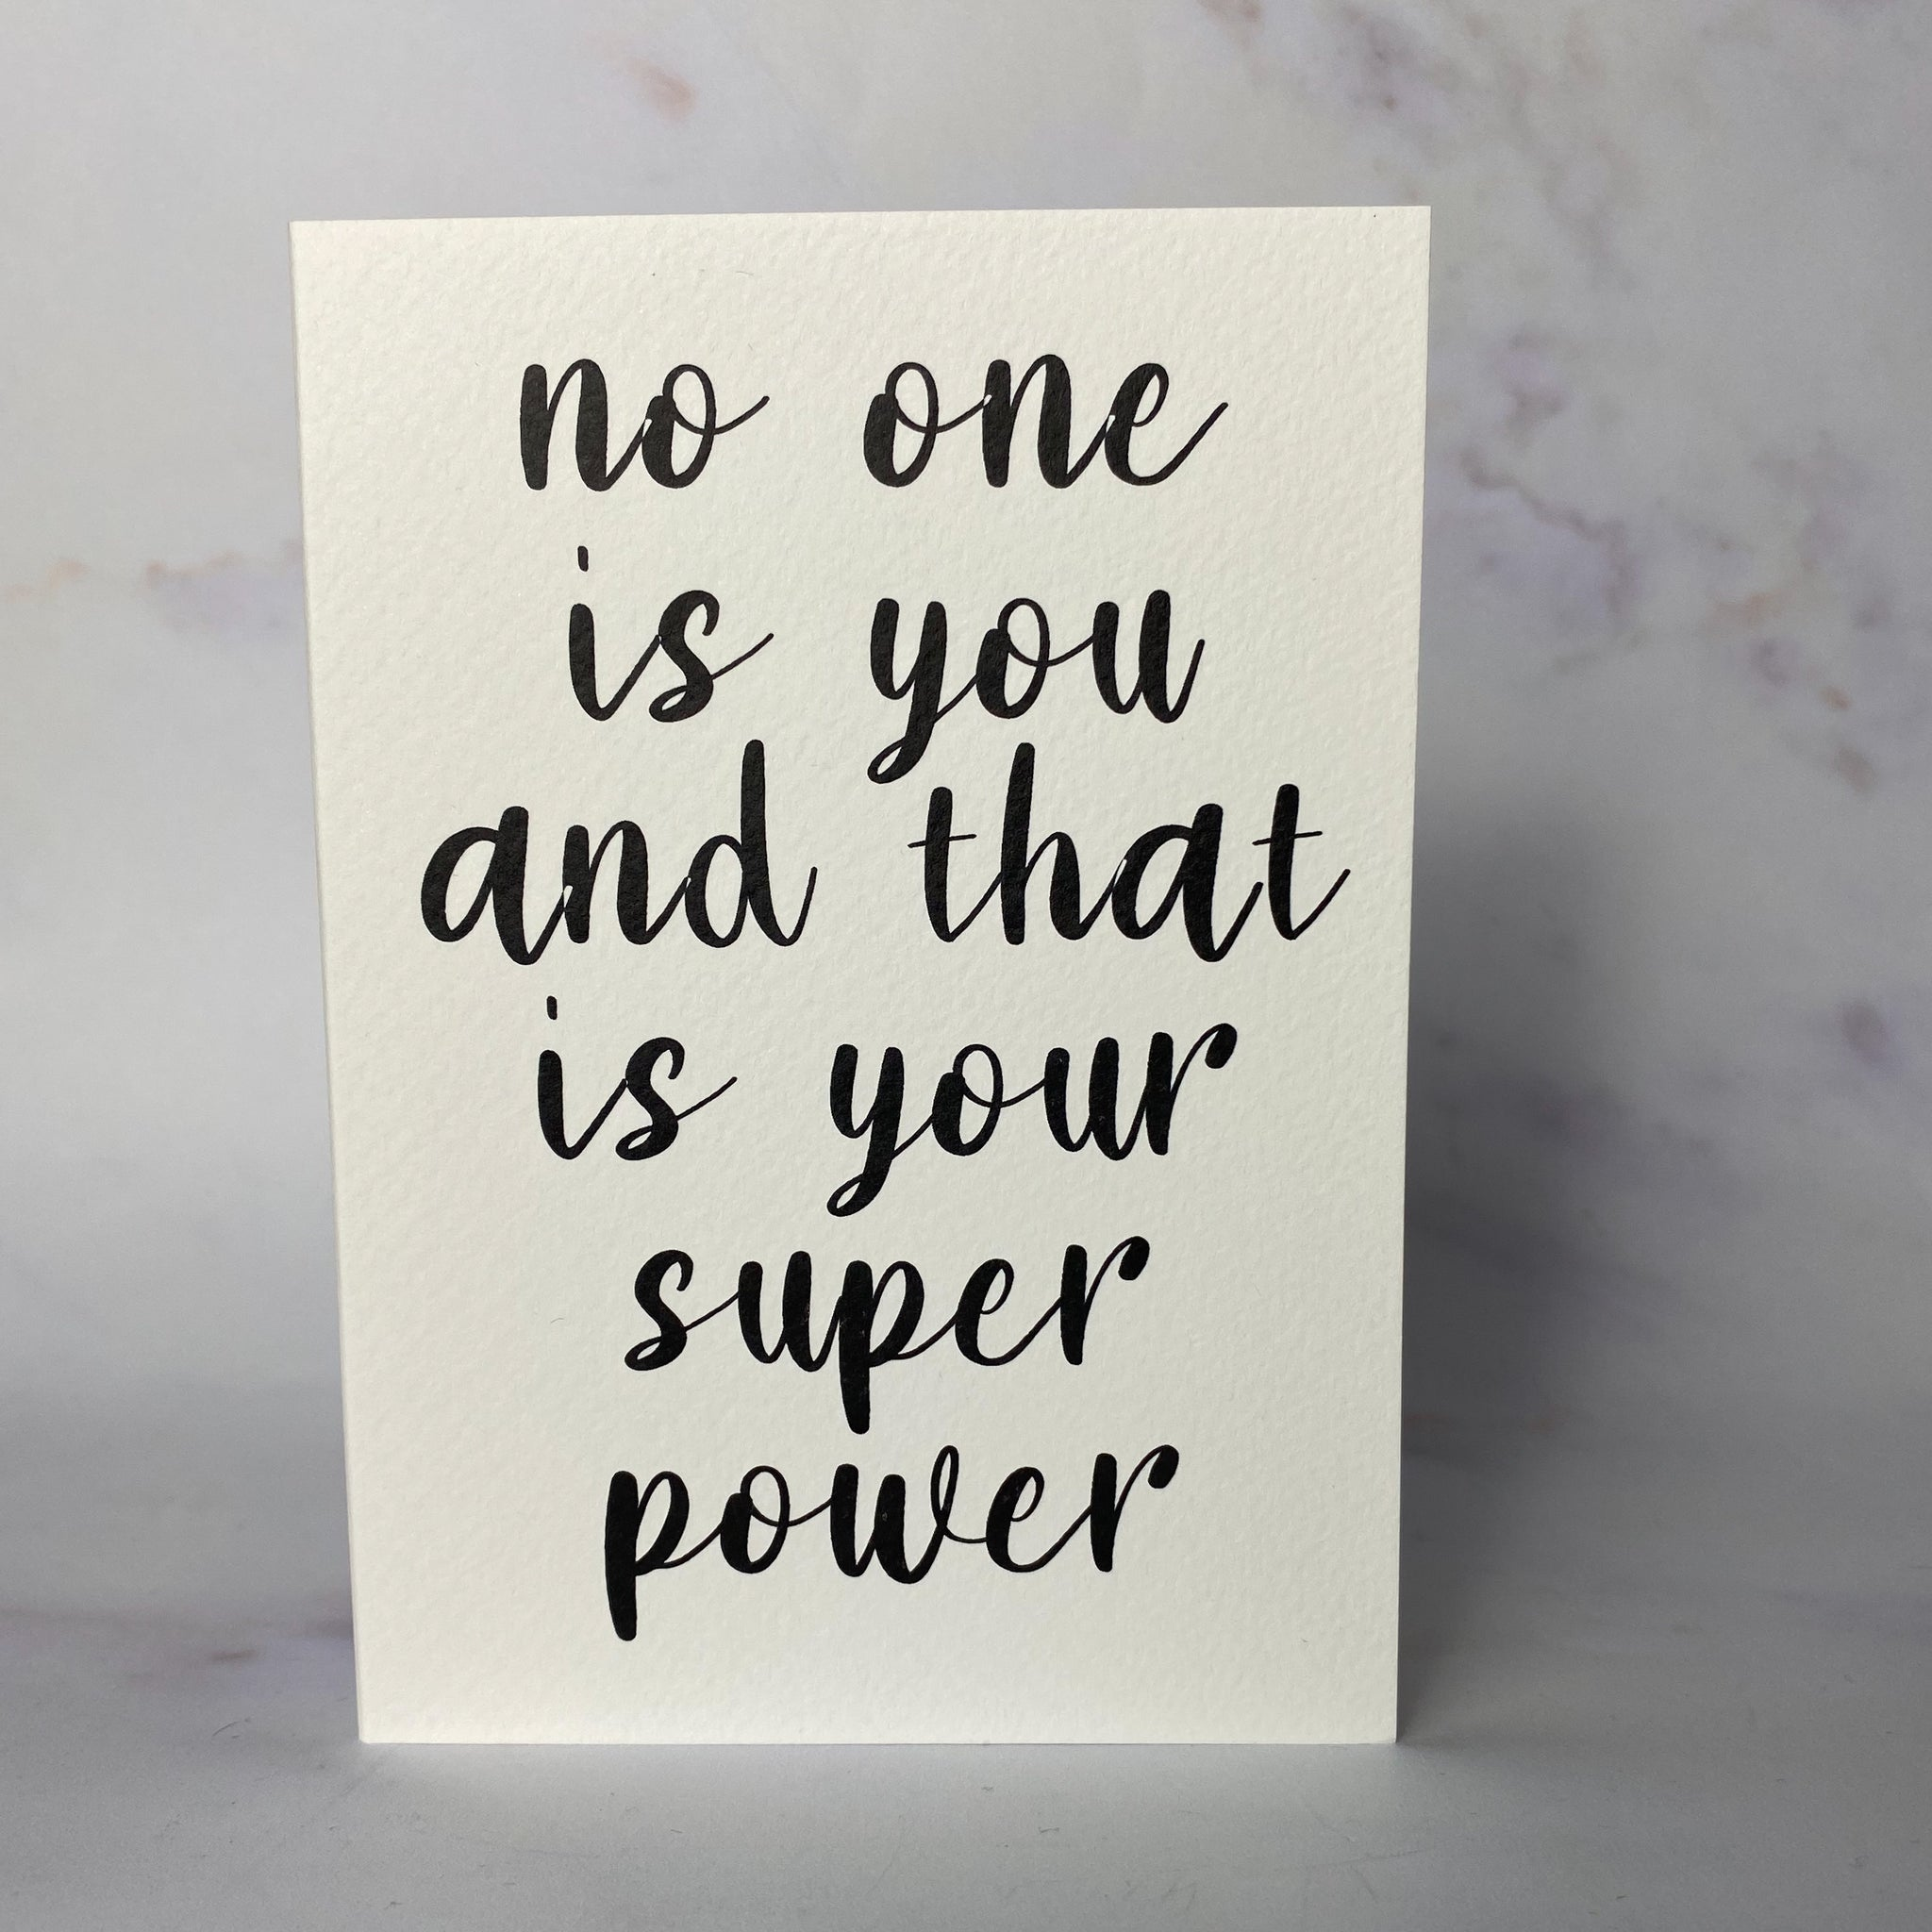 'No one is you and that is your super power' card/mini print